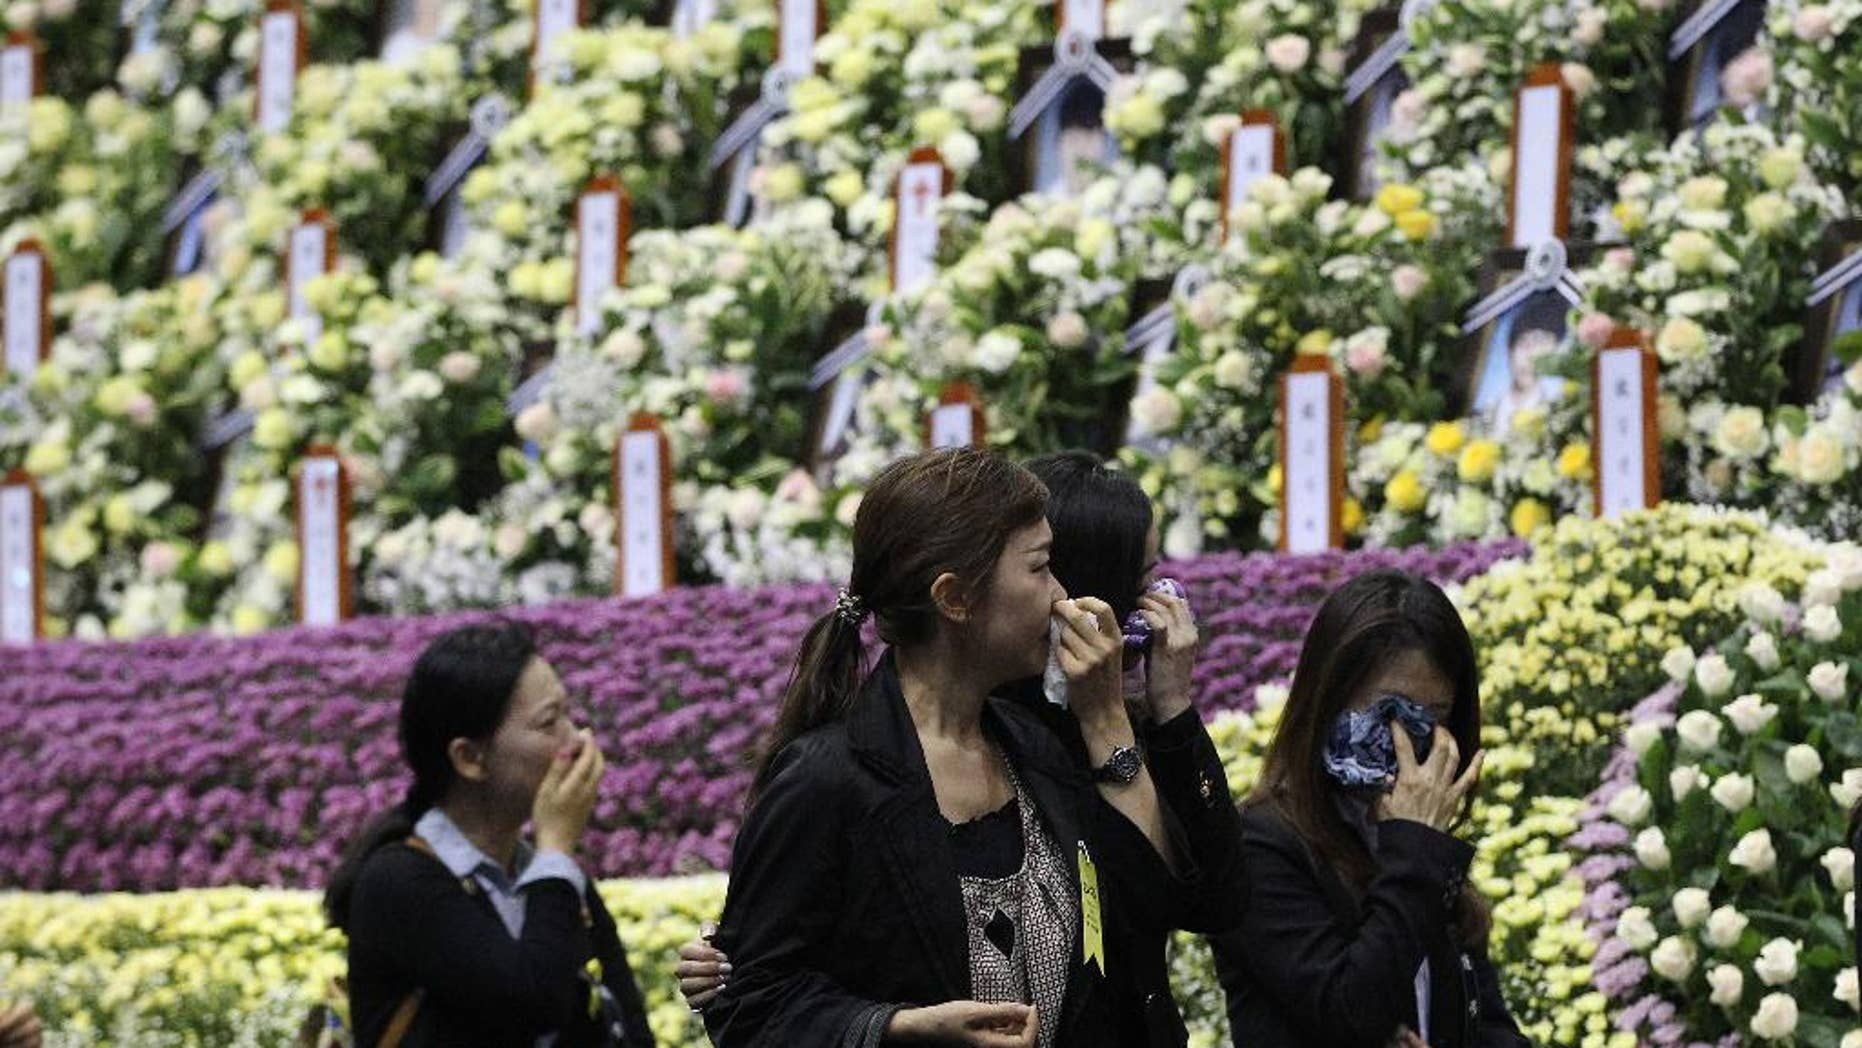 People weep as they pay tribute to the victims of the sunken ferry Sewol at a group memorial altar in Ansan, south of Seoul, South Korea, Tuesday, April 29, 2014. South Korean President Park Geun-hye apologized Tuesday for the government's inept initial response to a deadly ferry sinking as divers fought strong currents in their search for nearly 100 passengers still missing nearly two weeks after the accident.(AP Photo/Ahn Young-joon)